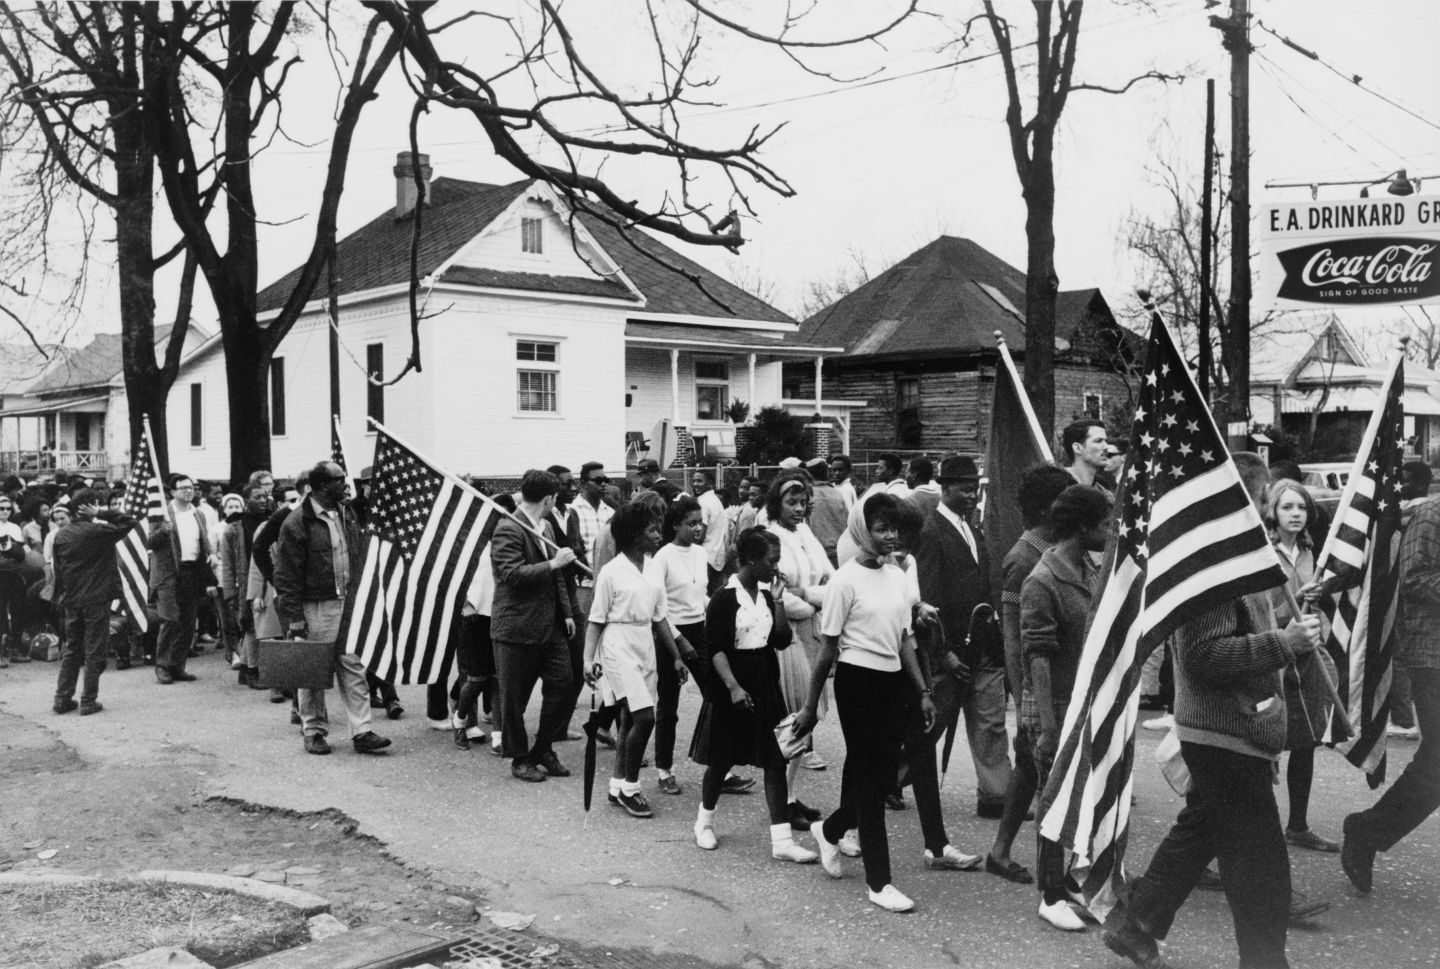 us history civil rights Civil rights act: summary of the civil rights act, landmark us legislation of 1964 intended to end discrimination based on race, color, religion, or national origin.